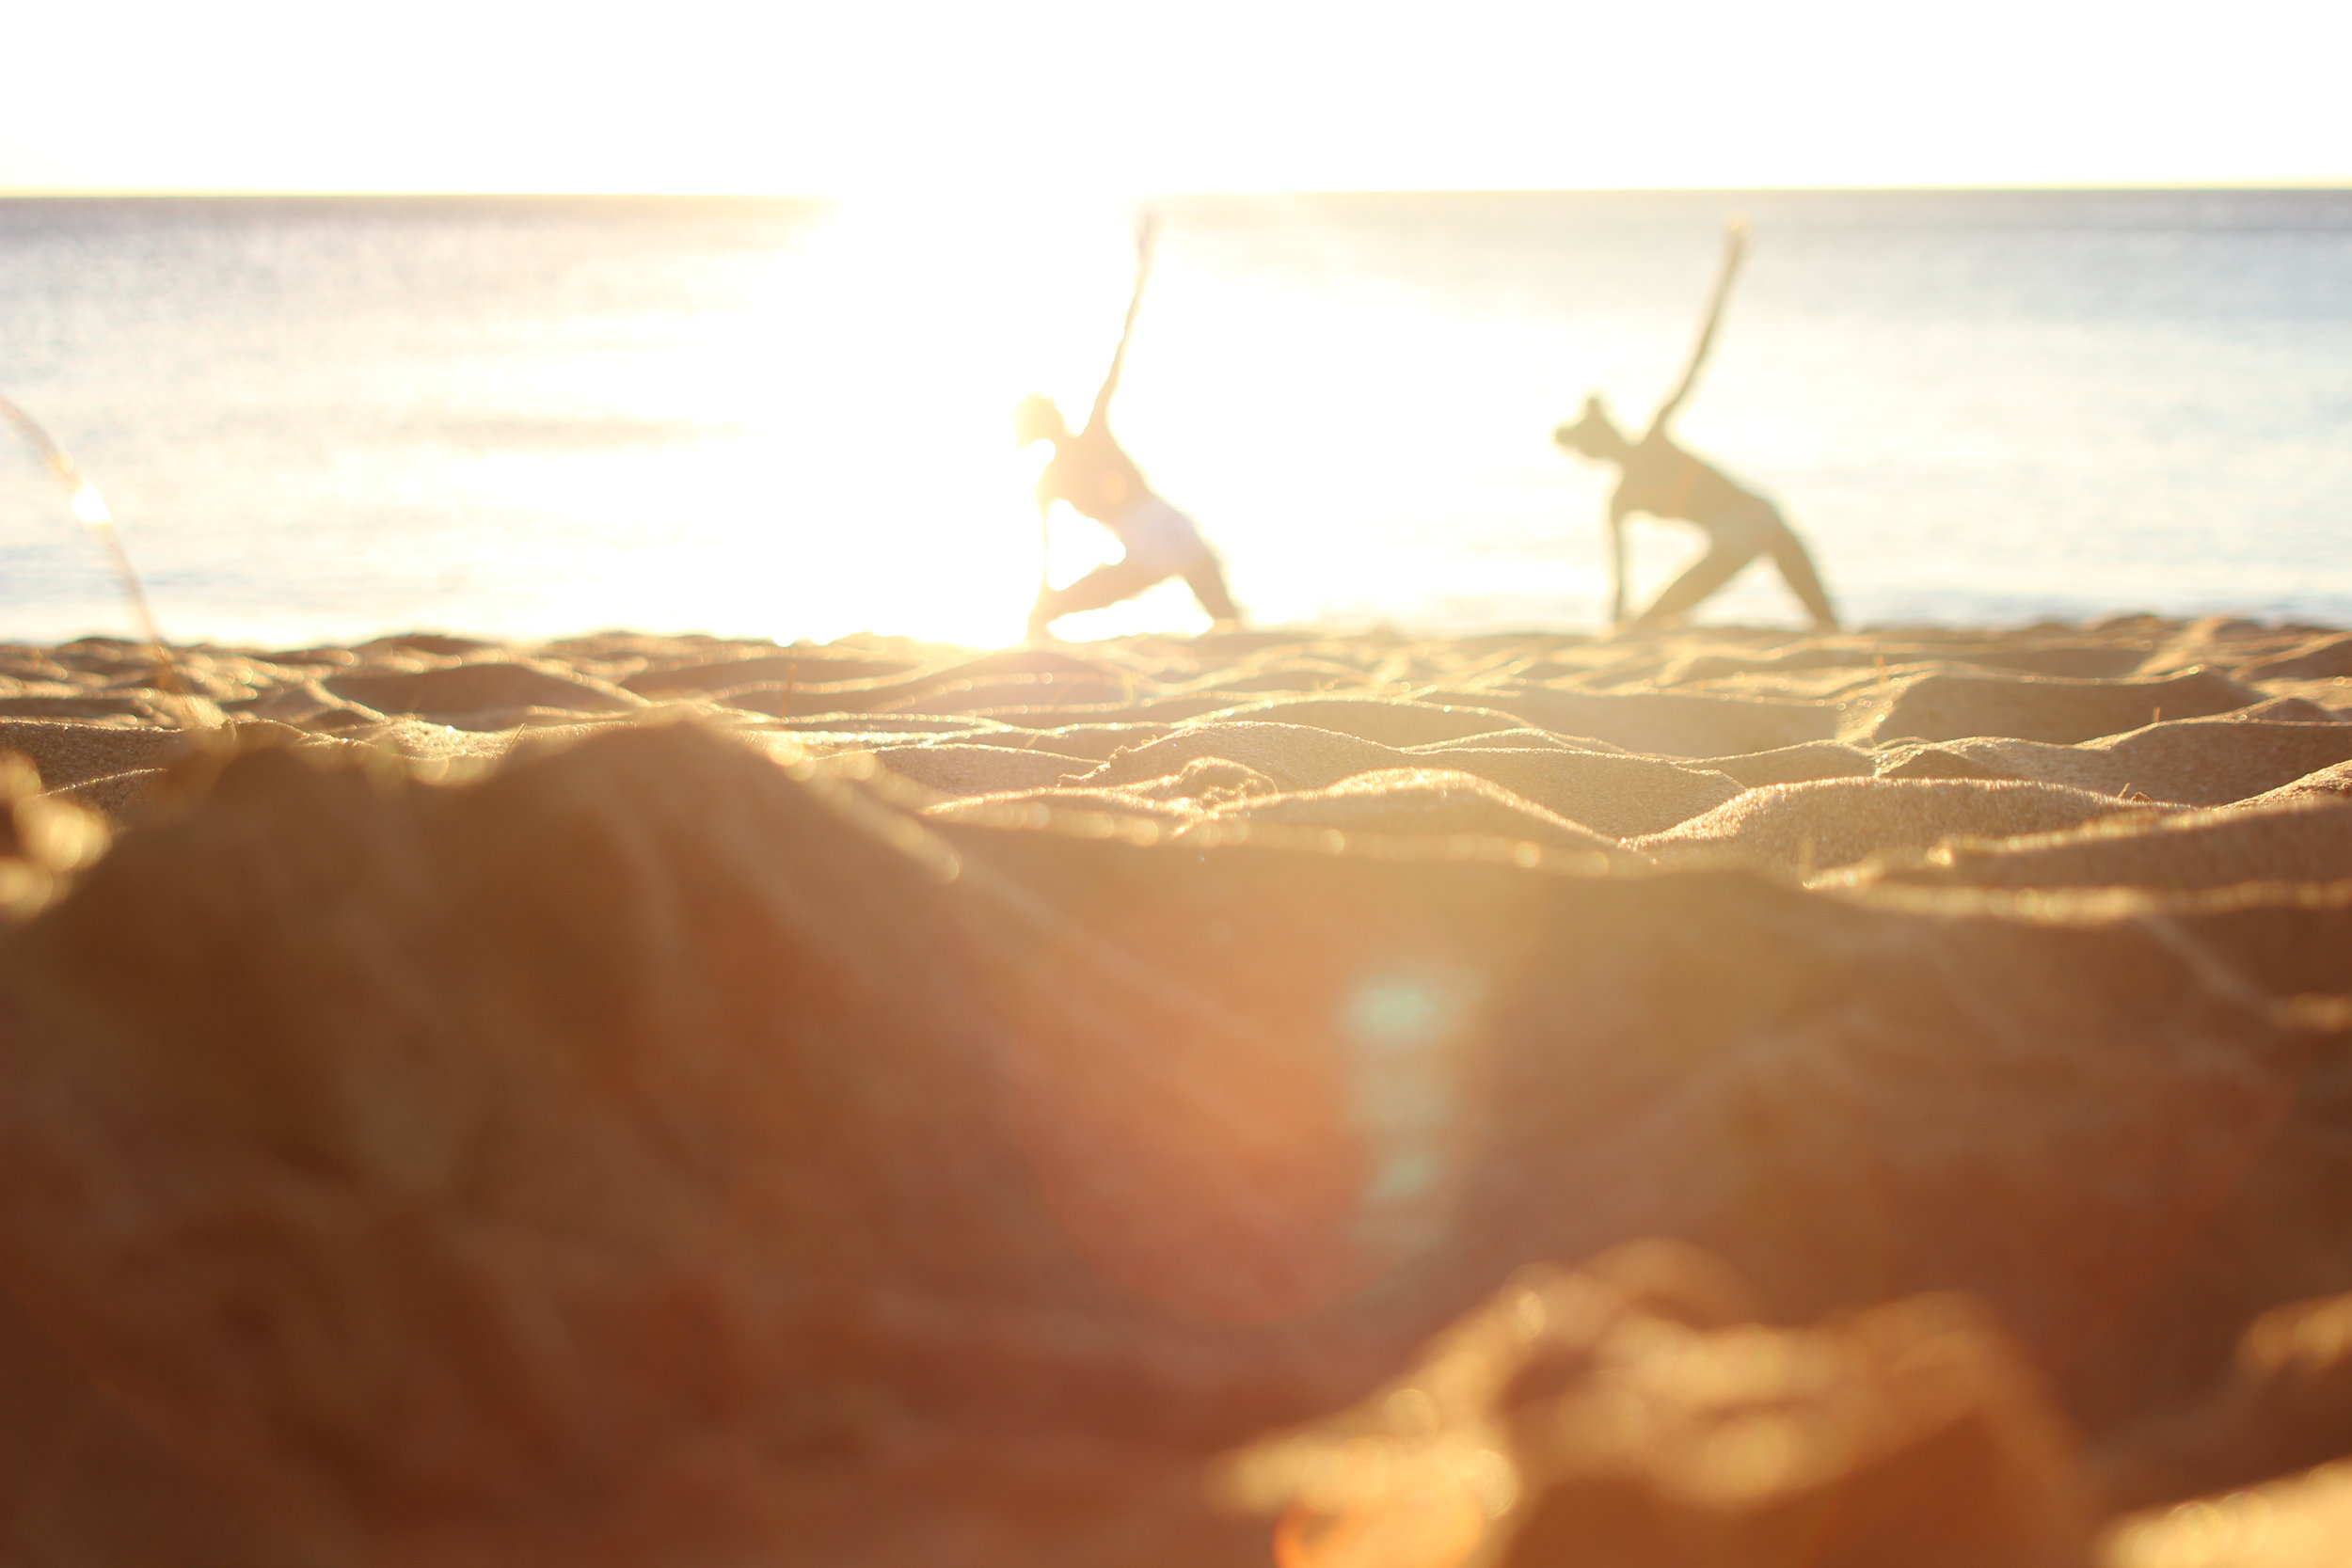 My littler sister and I decided to do yoga while we watched the sunset. The sun sets very quickly in Maui, it takes less than 15 minutes.